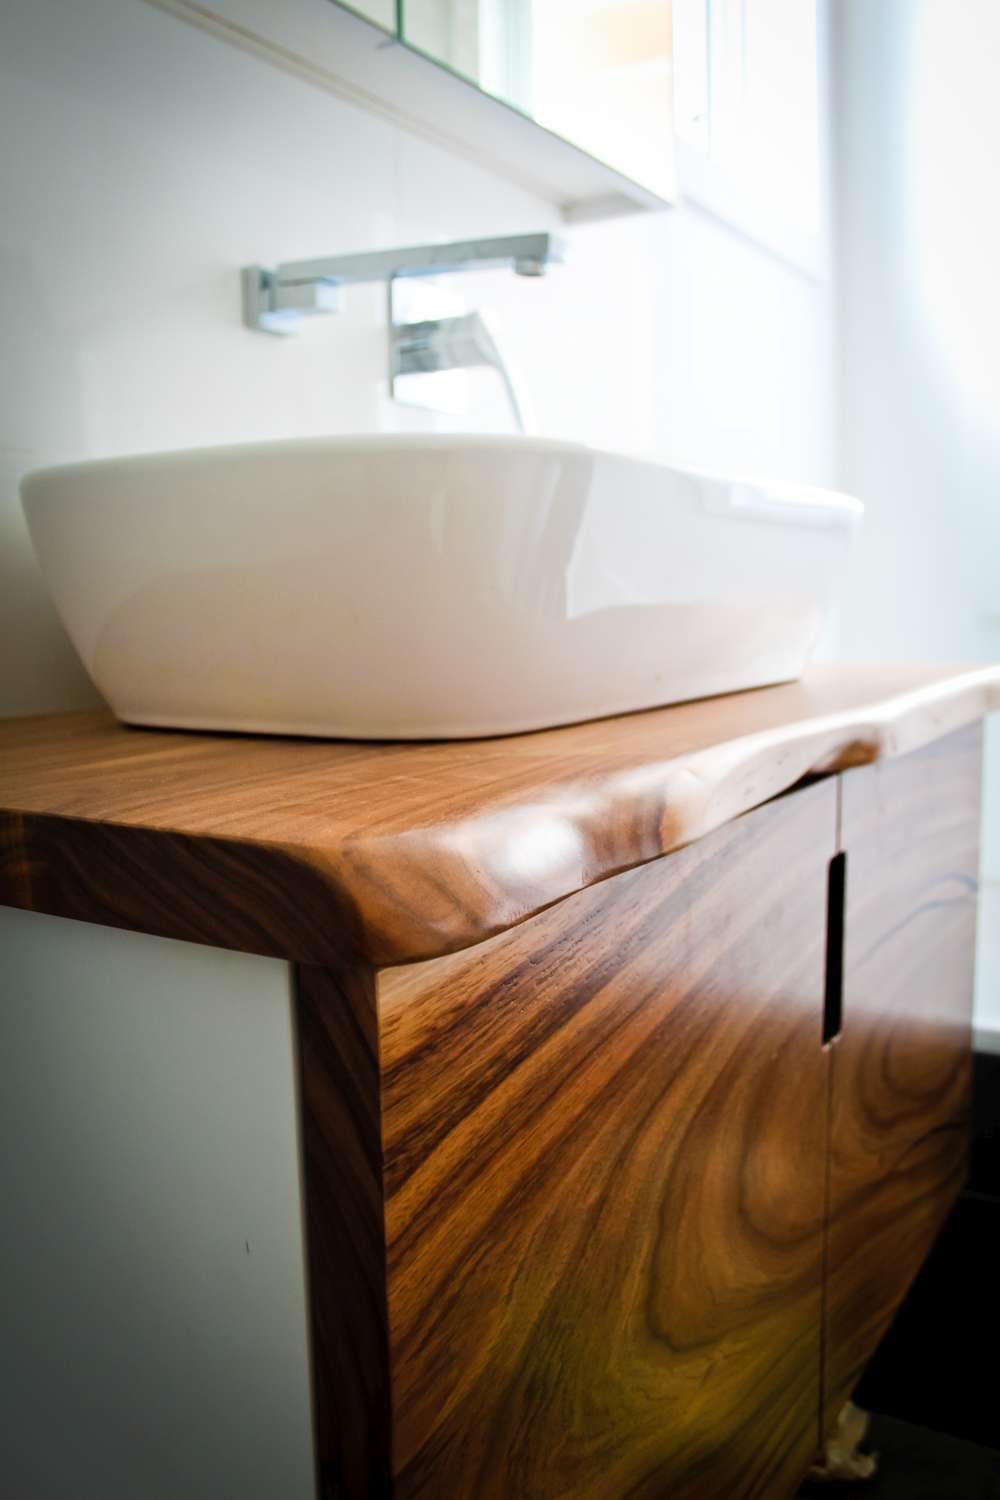 Brighten Your Bathroom With Custom Made Wood Vanity Tops Matching Mirrors And Even A Unique Handmade Timber Bath All From Solid Australian Timbers